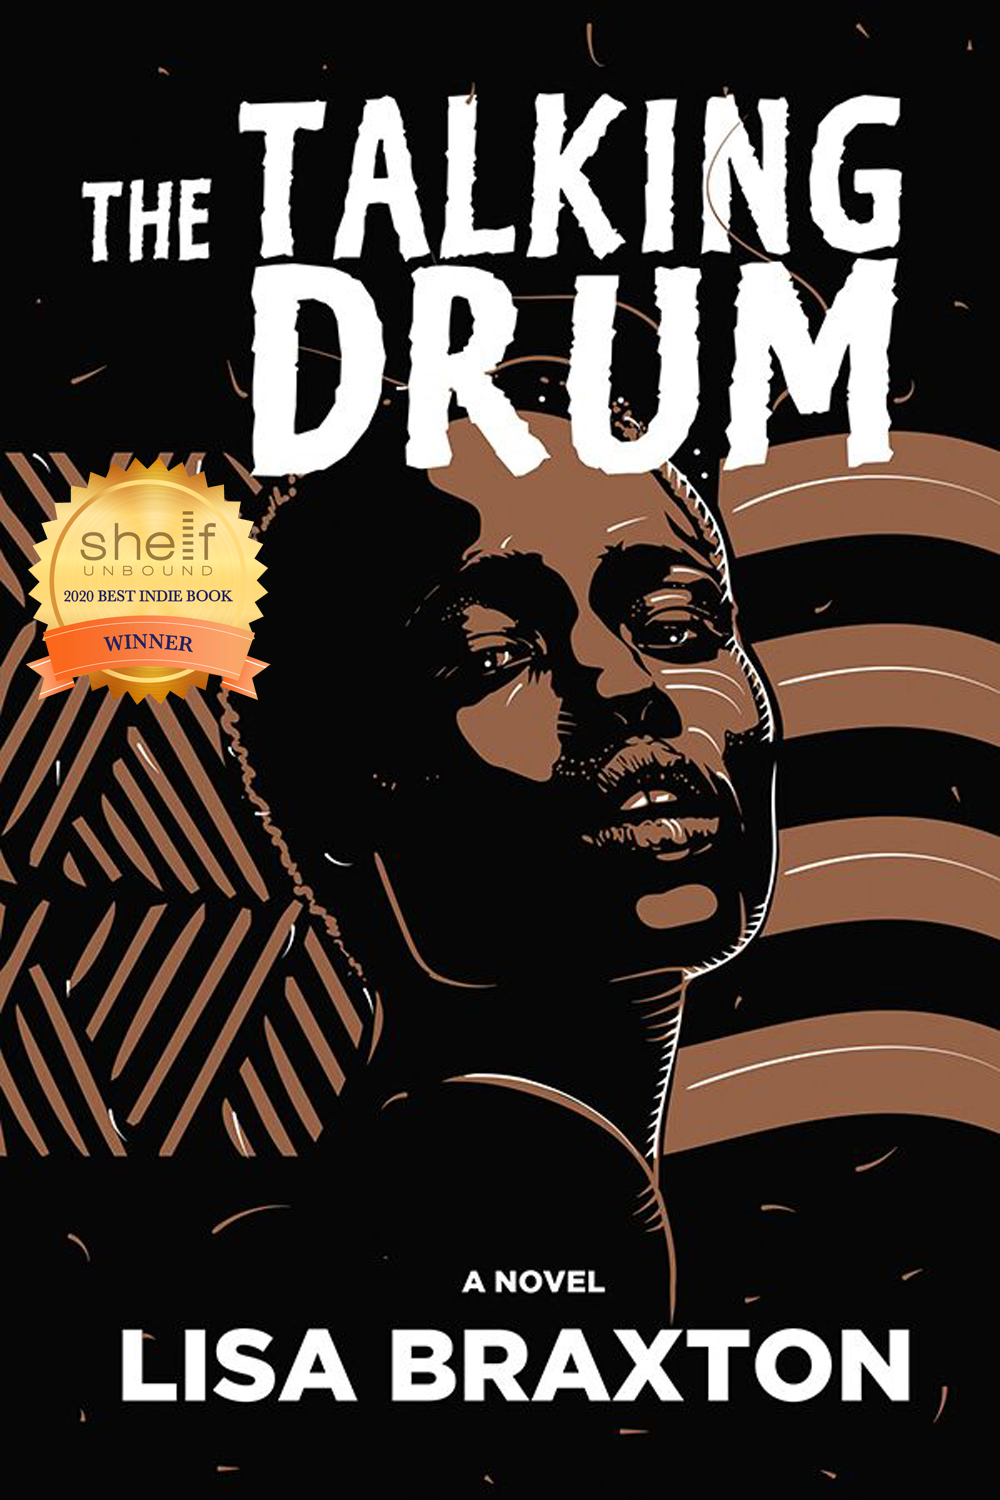 Lisa Braxton: Five Things I Learned Writing The Talking Drum